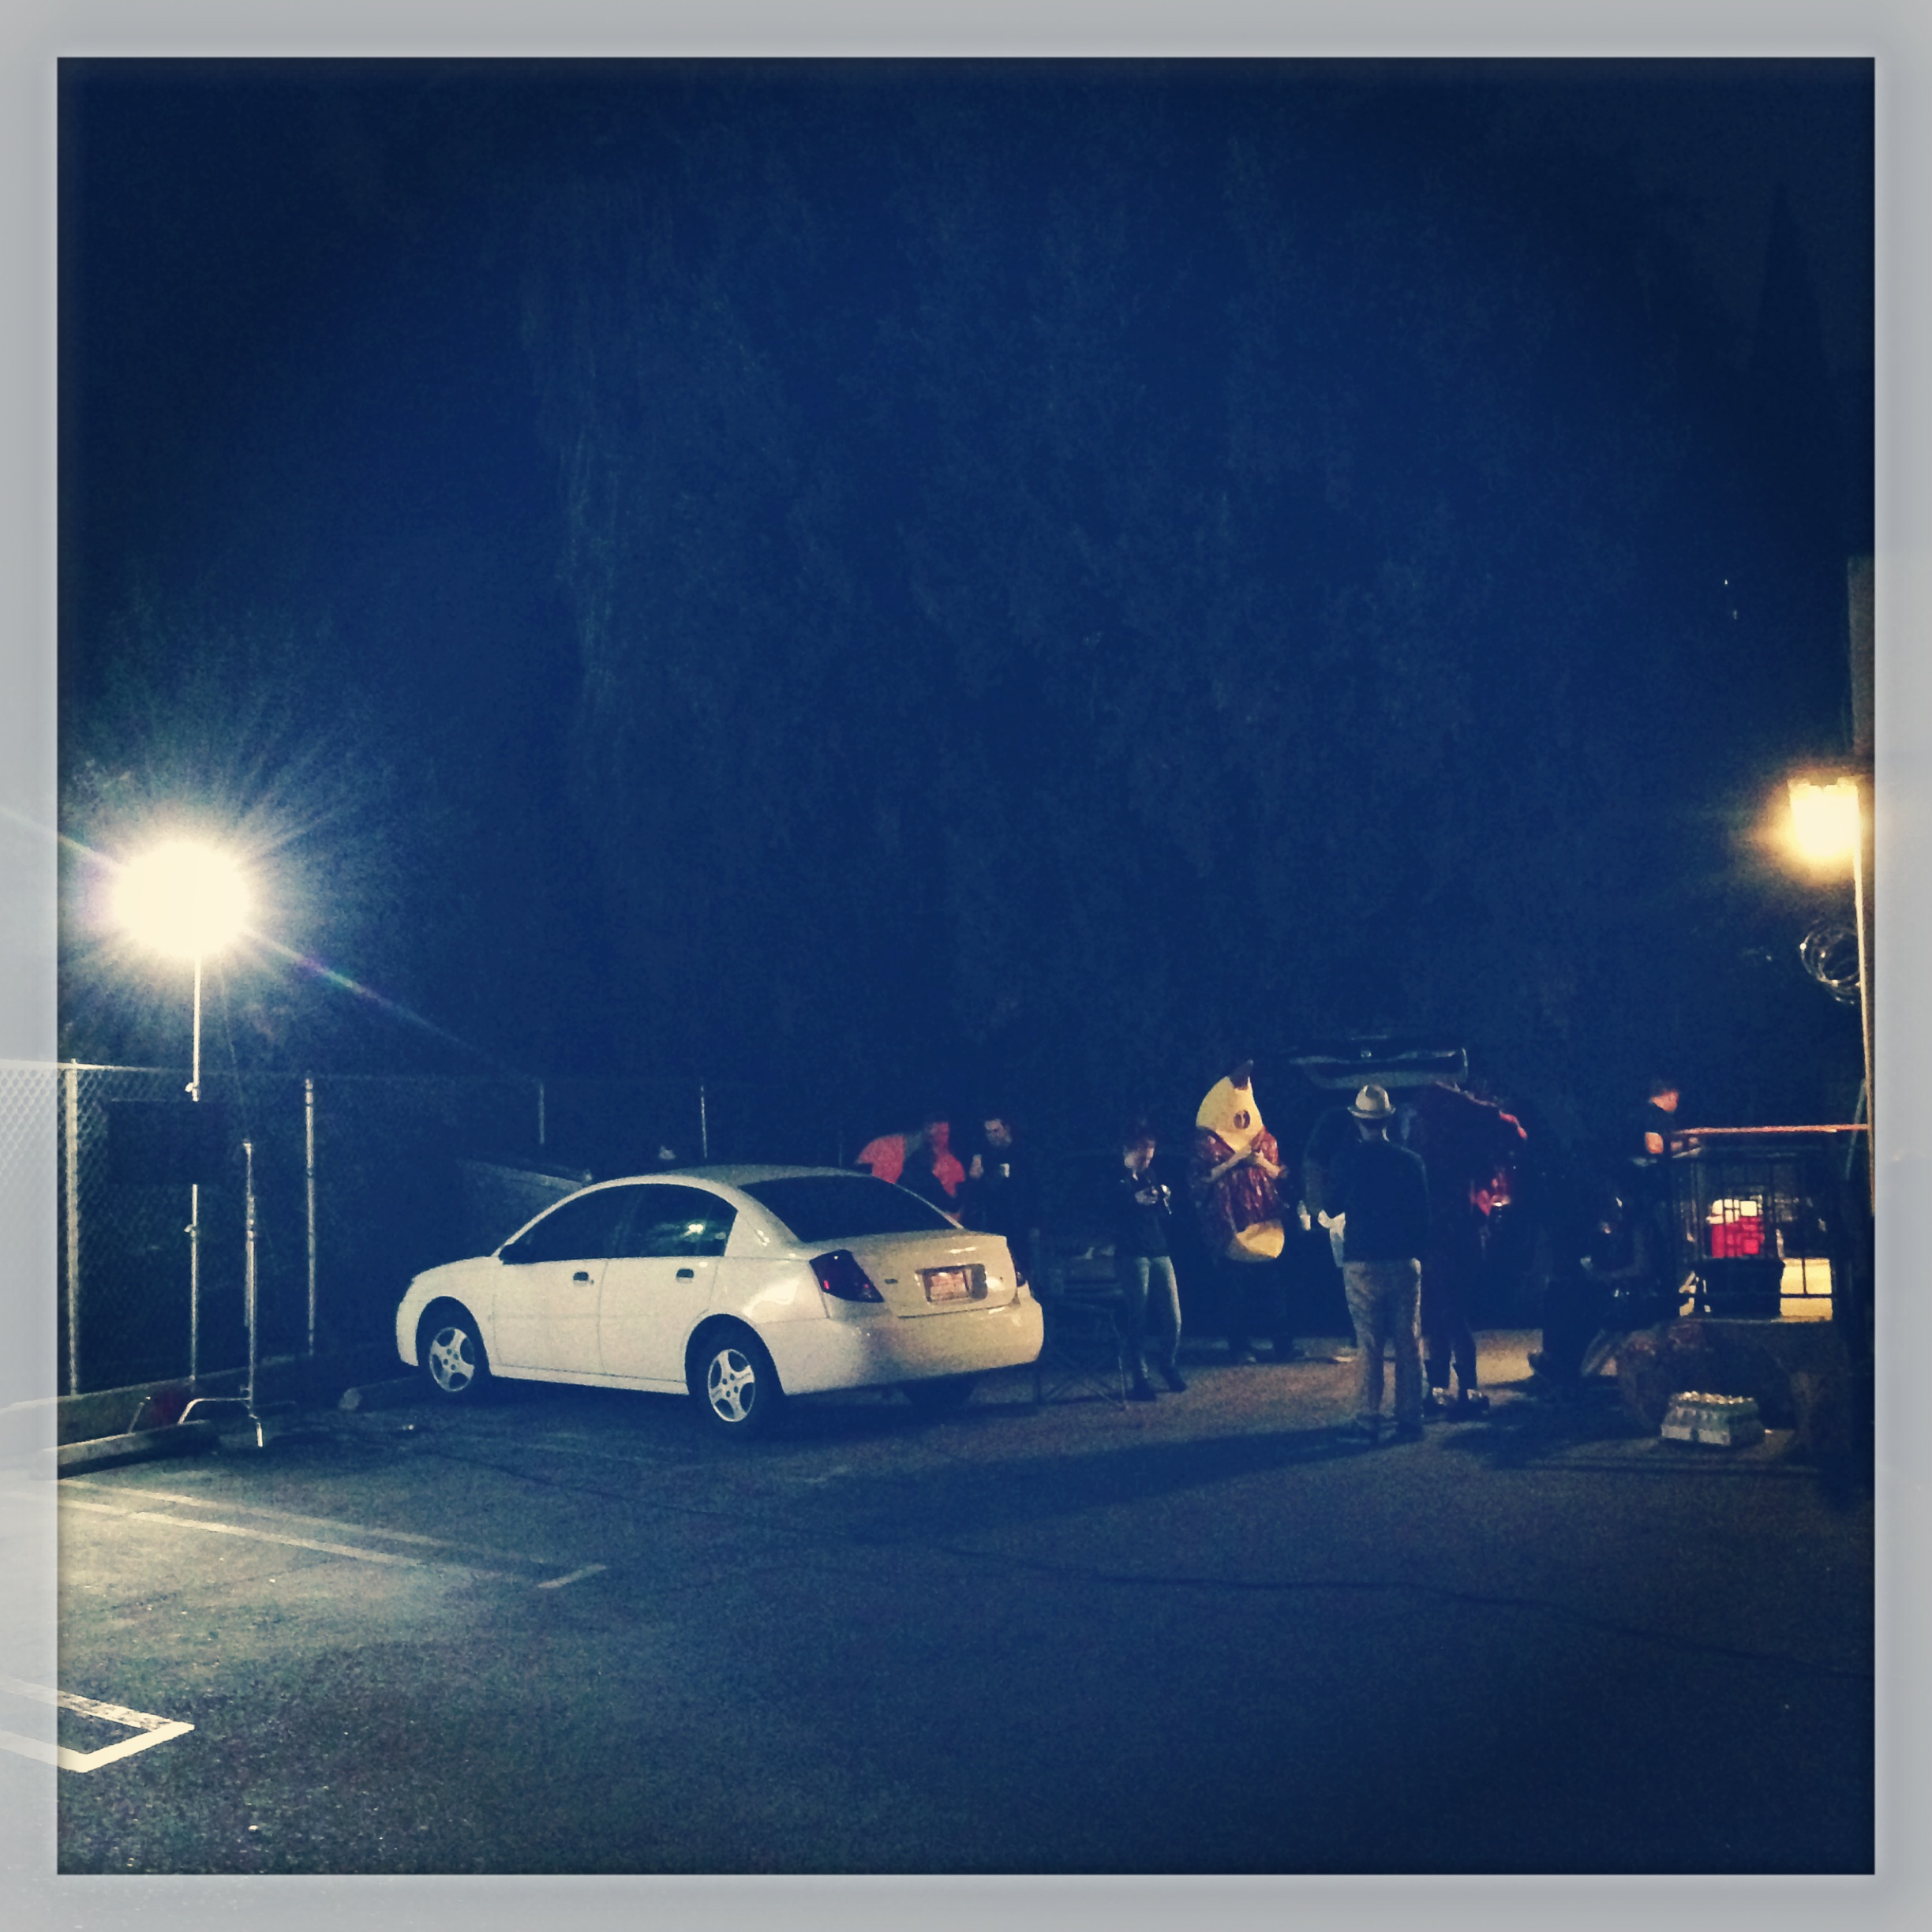 Late nights in the parking lot of the motel